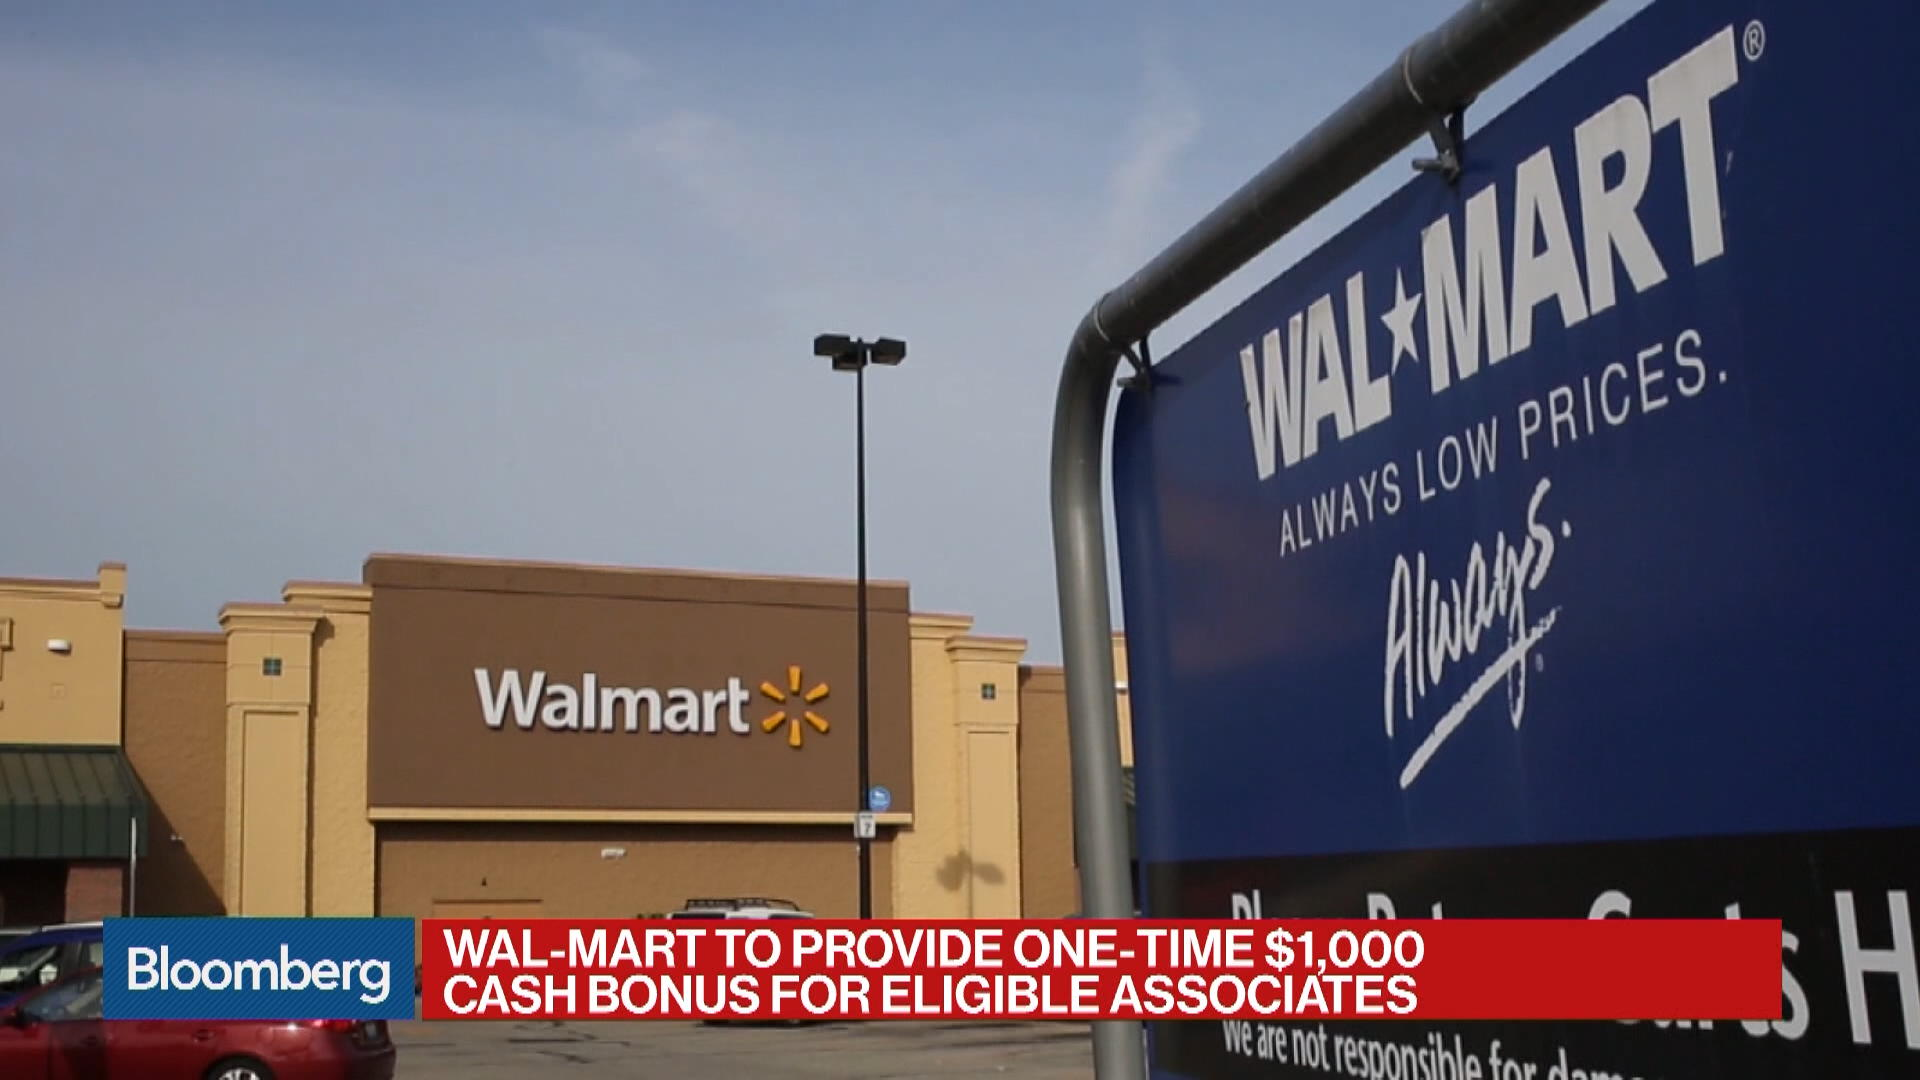 Wal-Mart Stores, Inc. (NYSE:WMT) Shares Bought by Foster & Motley Inc